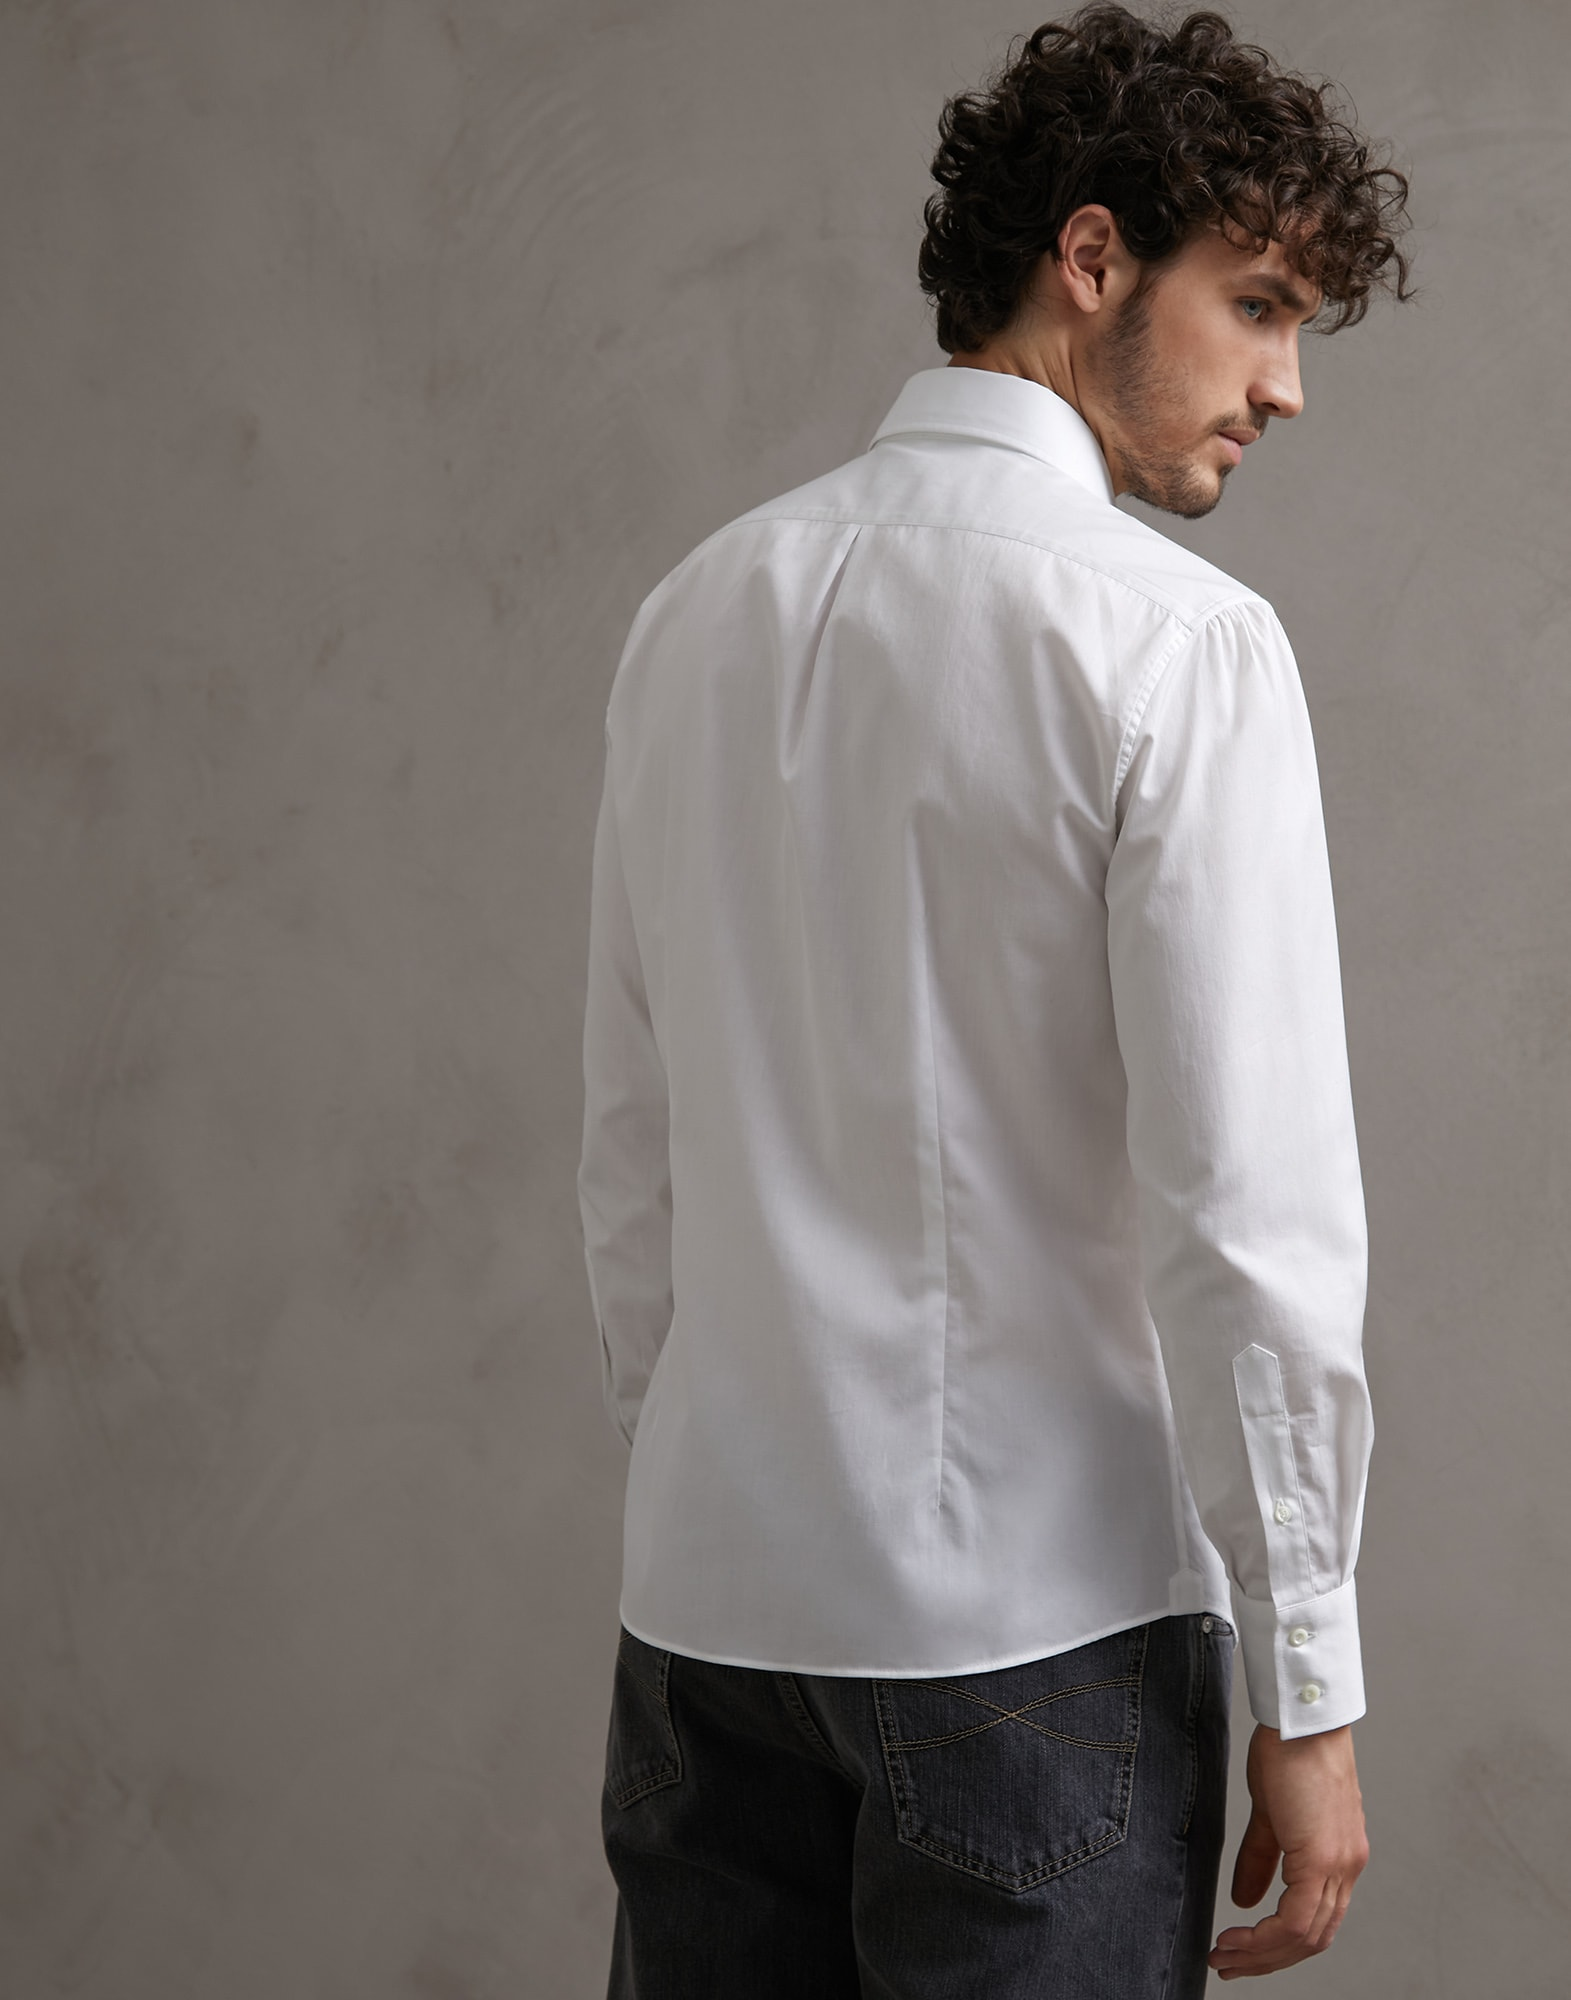 French Collar Shirt - Back view